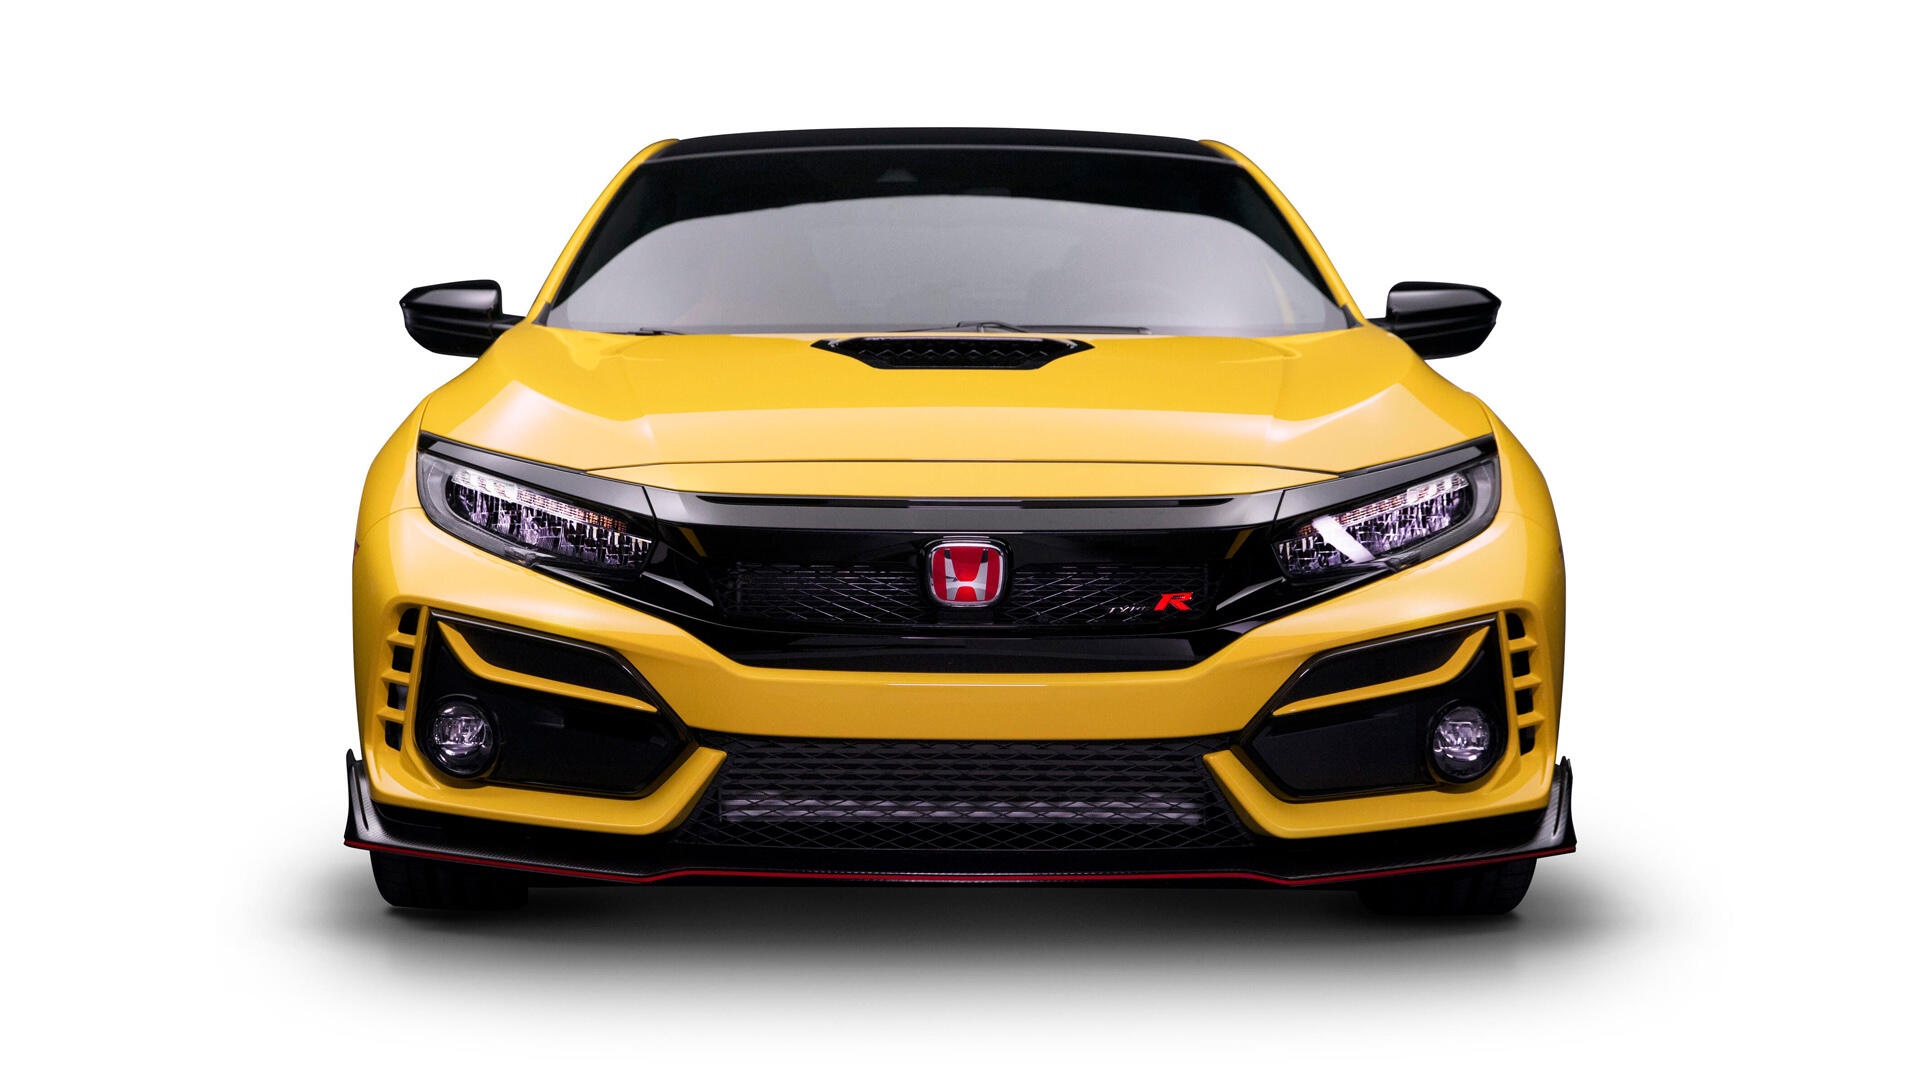 Video: AutoComplete checks out the 2021 Honda Civic Type R